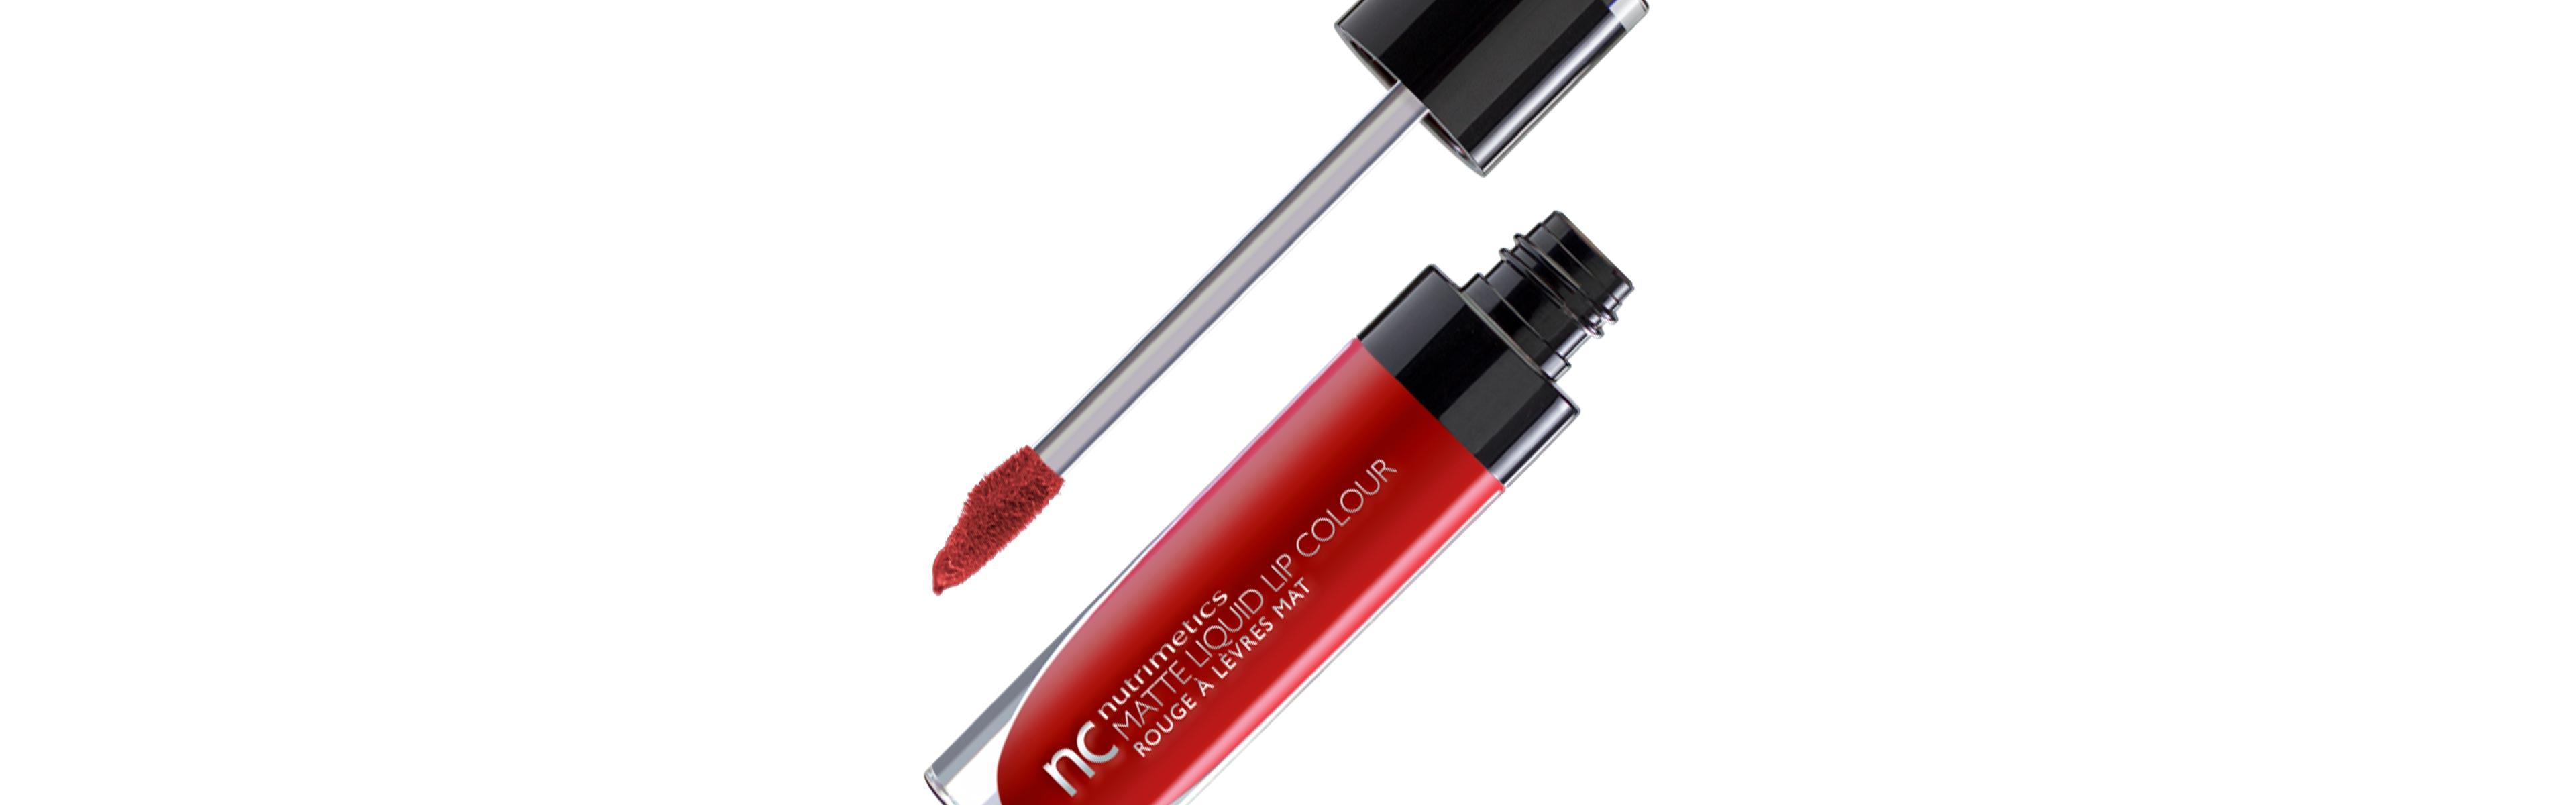 RICH RED - Nutrimetics